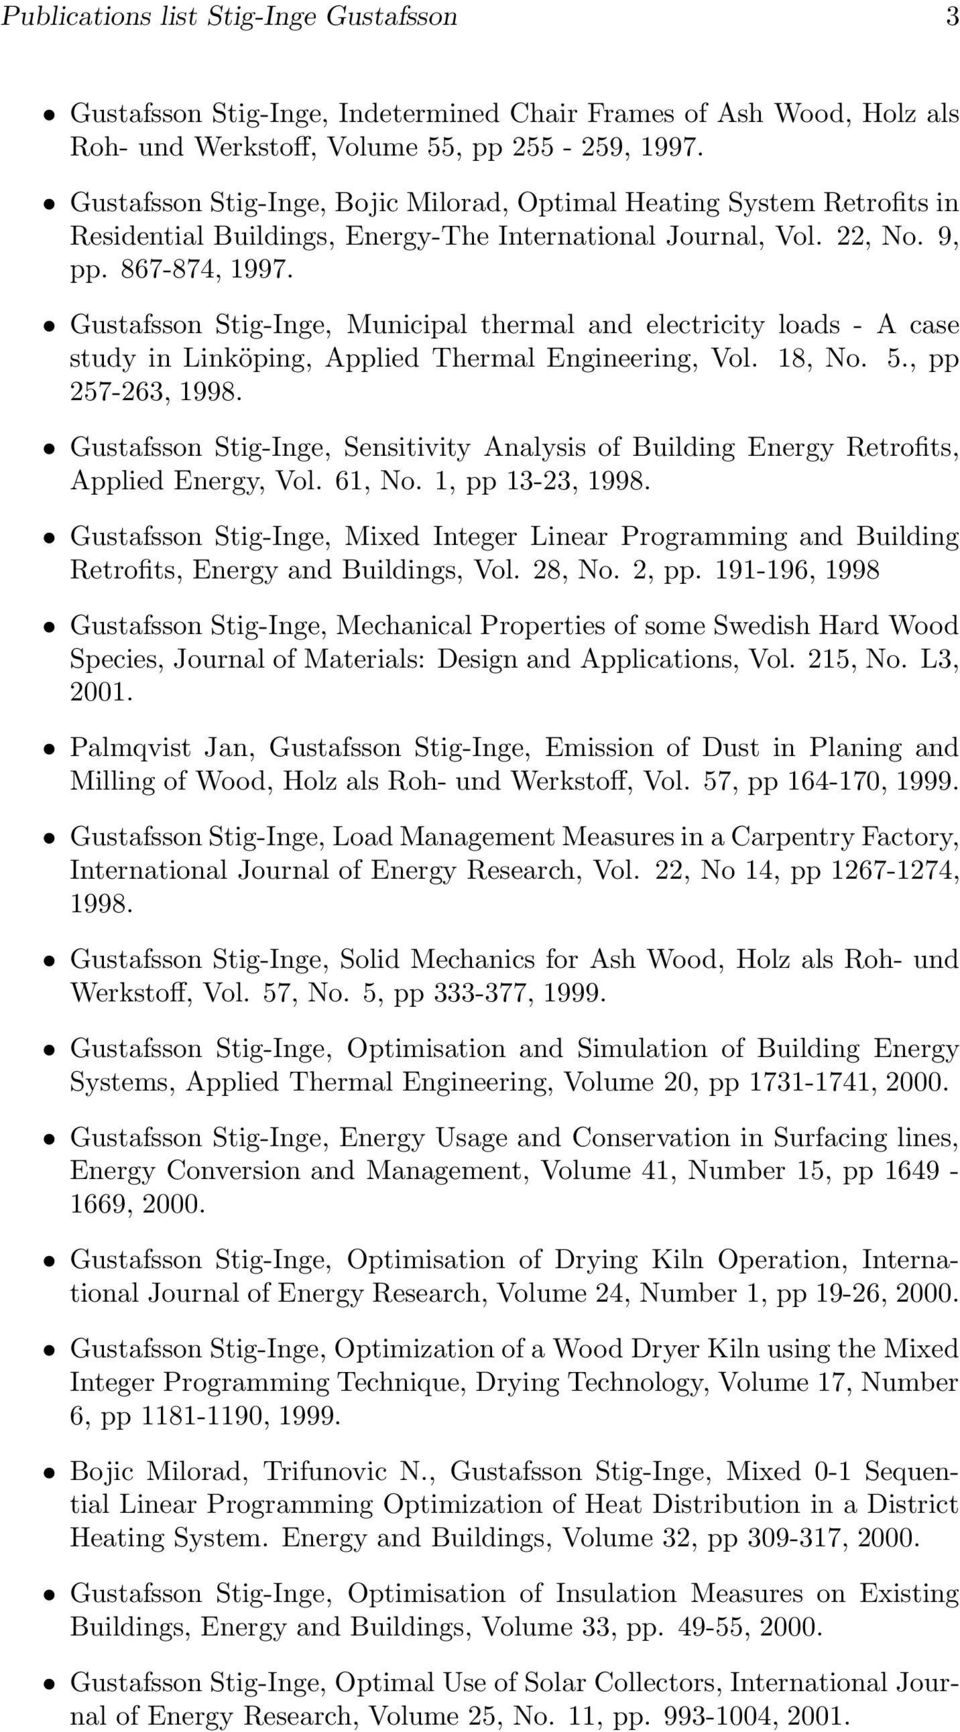 Gustafsson Stig-Inge, Municipal thermal and electricity loads - A case study in Linköping, Applied Thermal Engineering, Vol. 18, No. 5., pp 257-263, 1998.